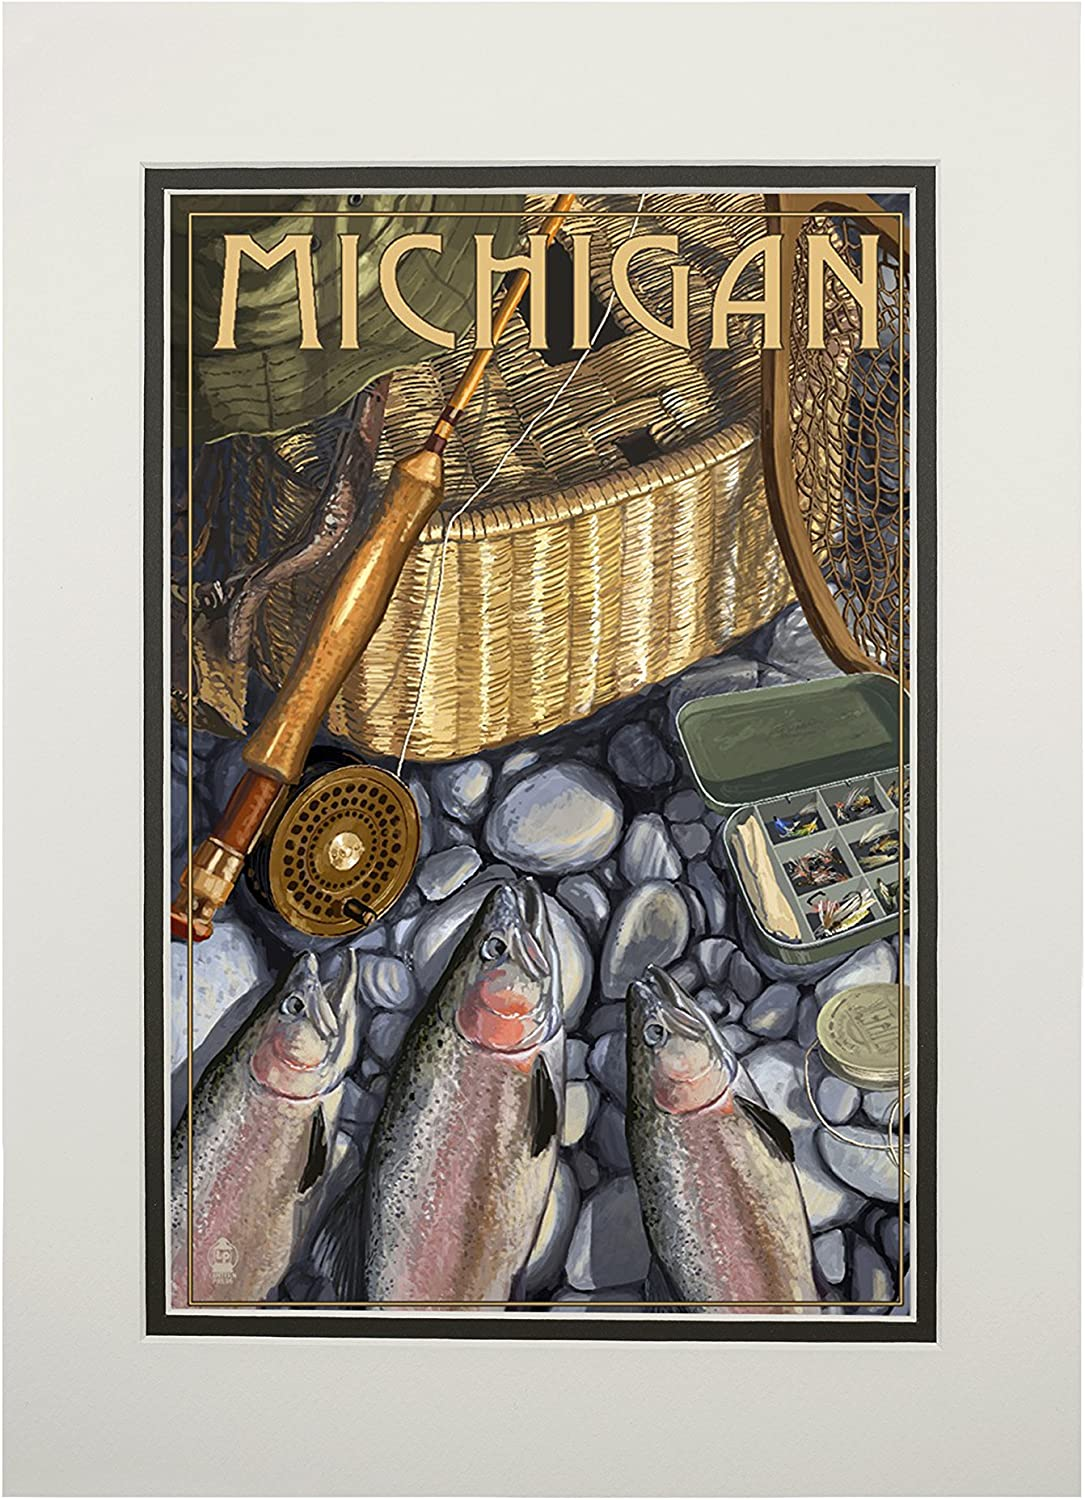 24x36 Giclee Gallery Print, Wall Decor Travel Poster Michigan Fishing Still Life